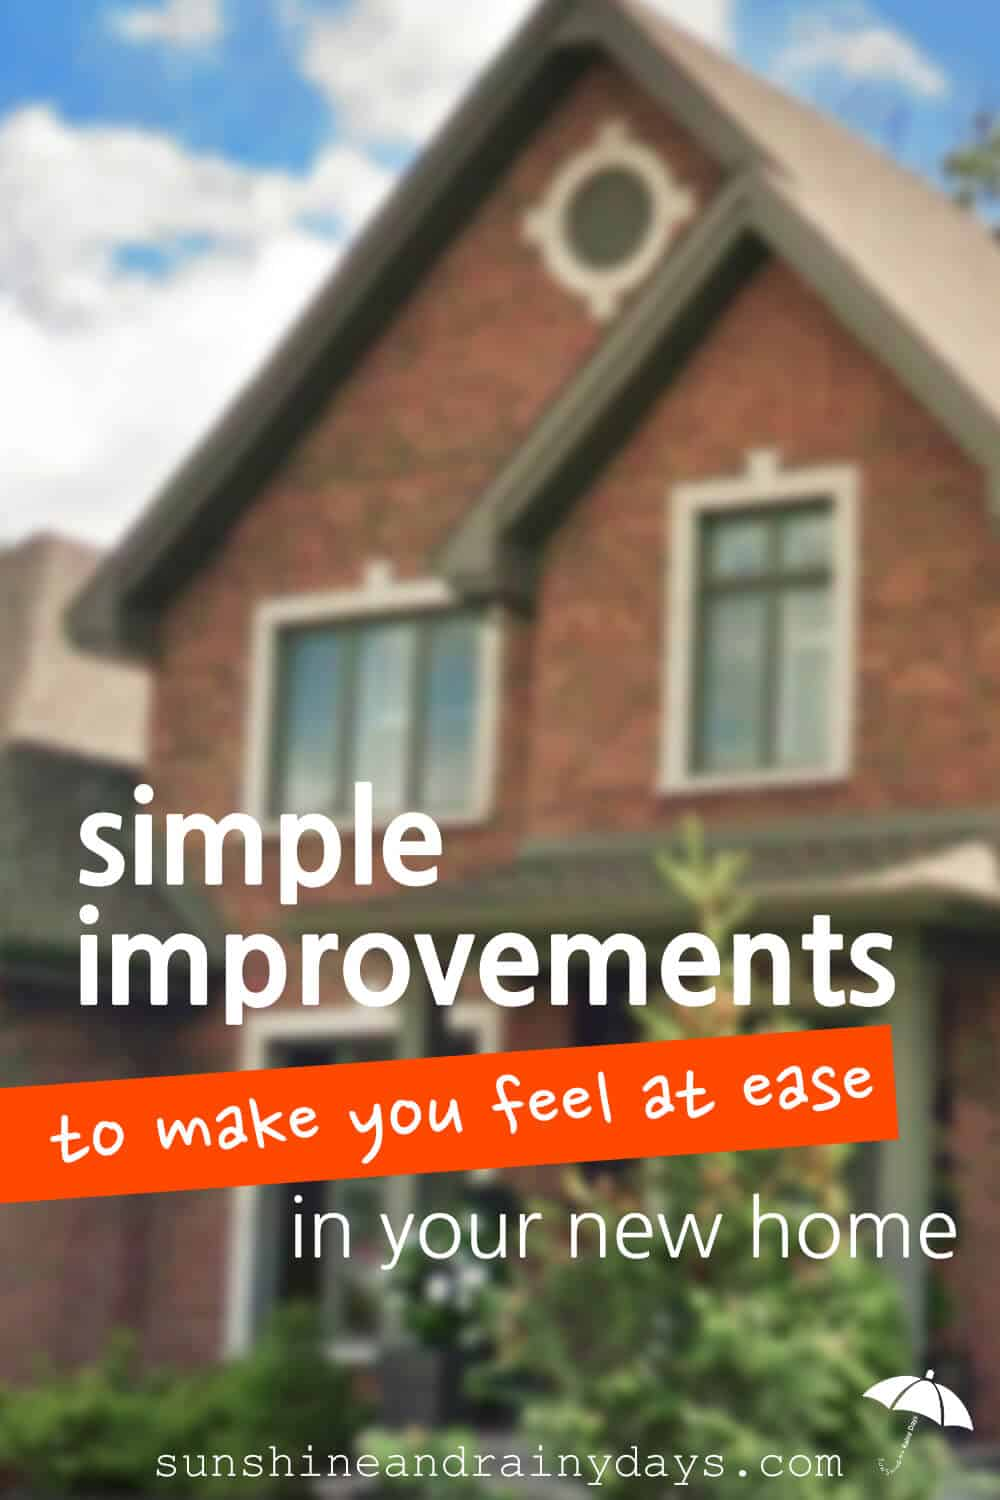 House with the words: Simple Improvements To Make You Feel At Ease In Your New Home